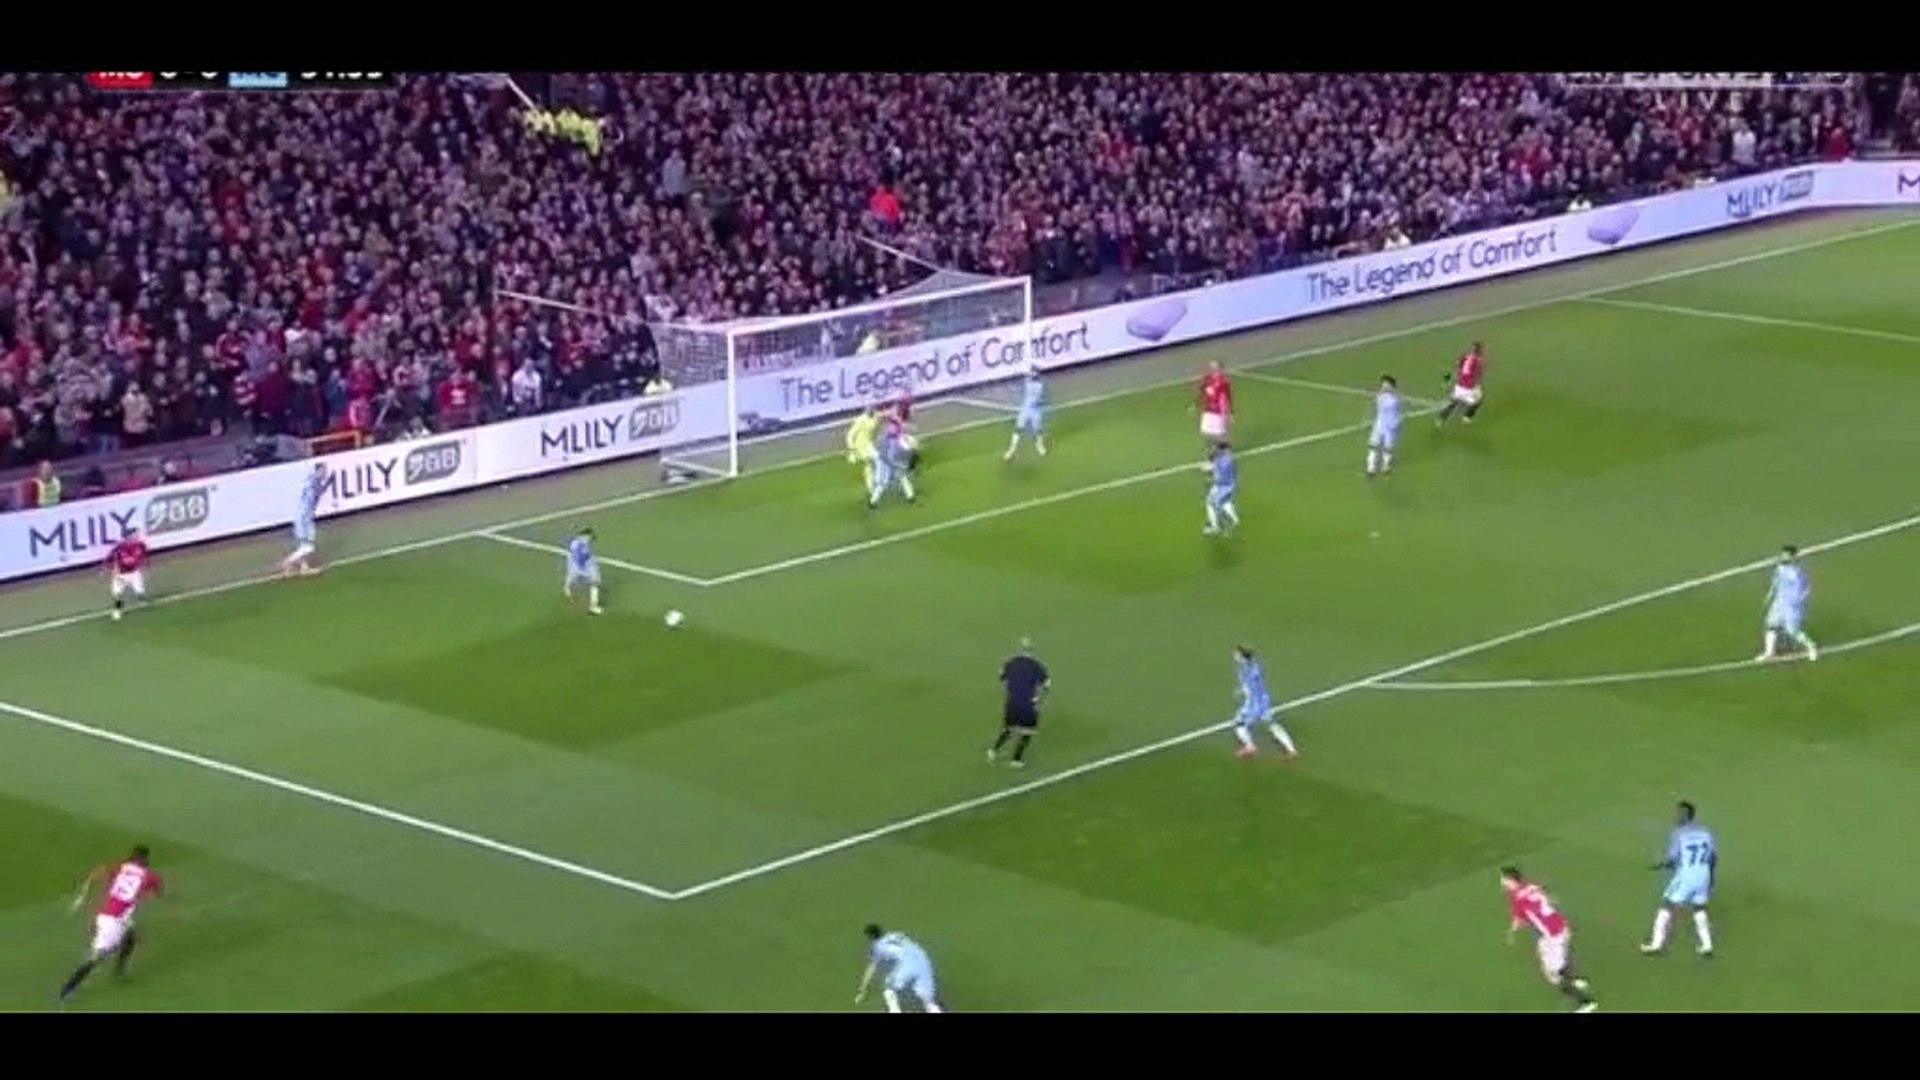 Best Goals Derby Manchester United 1 vs 0 Manchester City